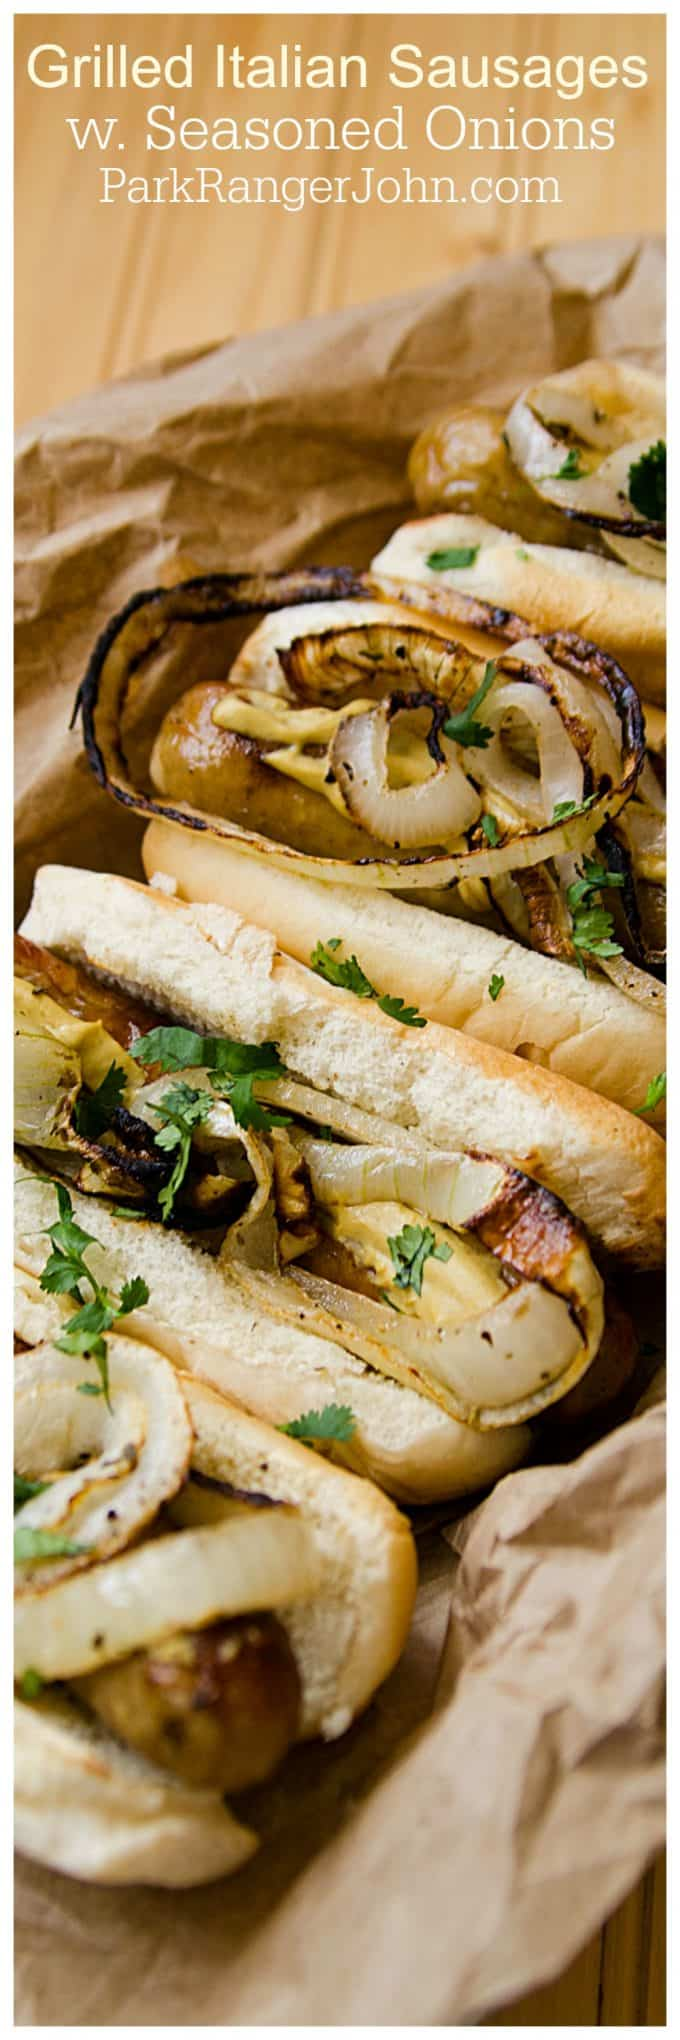 Grilled Italian Sausage Sandwiches with Seasoned Onions Recipe perfect for Fourth of July, Barbecues, Picnic or family dinners. Super easy to make and tastes amazing.